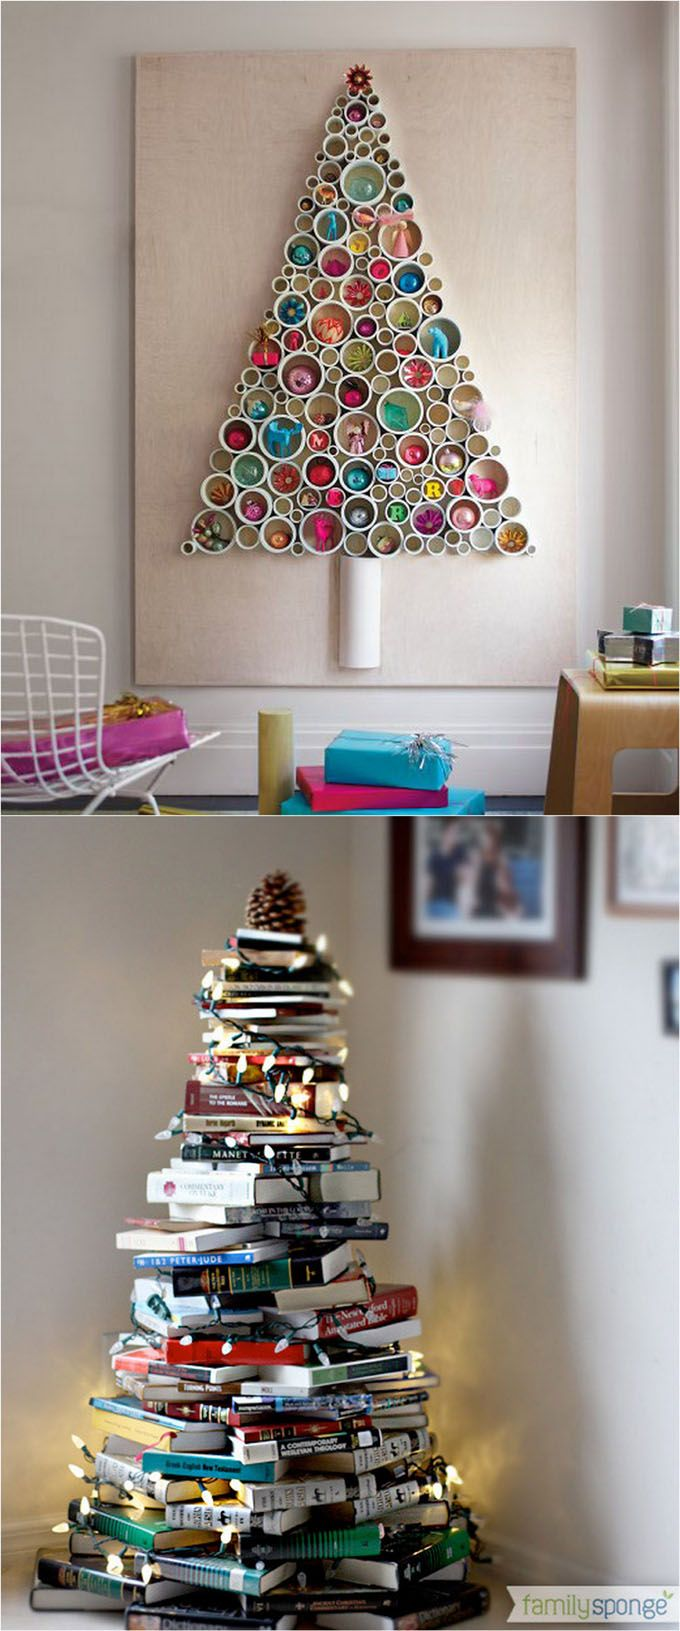 Hometalk diy christmas window decoration - 18 Unconventional And Beautiful Diy Christmas Trees Ideas To Create Unique Christmas Decorations For Your